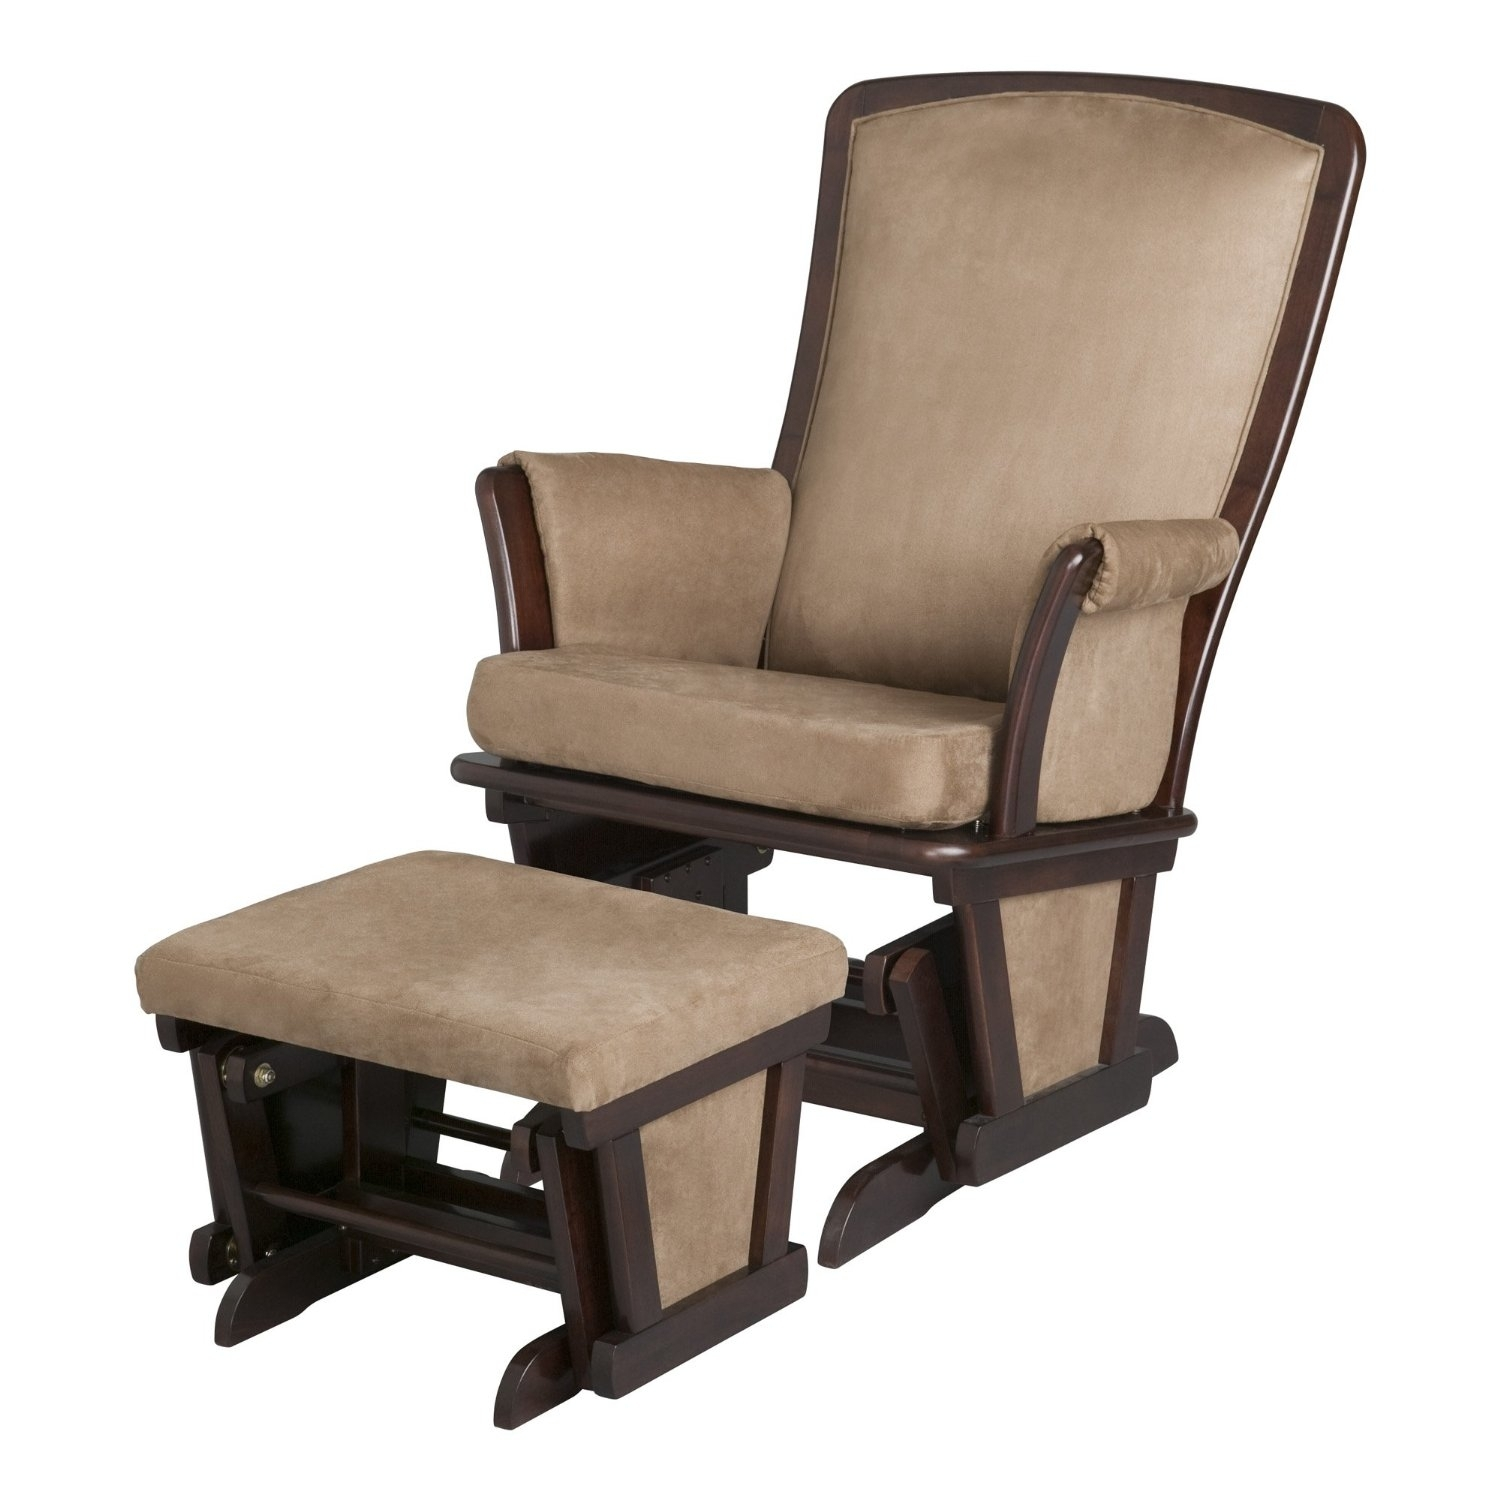 Furniture: Glider Rocking Chair Idea Gliding Chair Furniture Nursery With Regard To Rocking Chairs With Ottoman (#7 of 15)